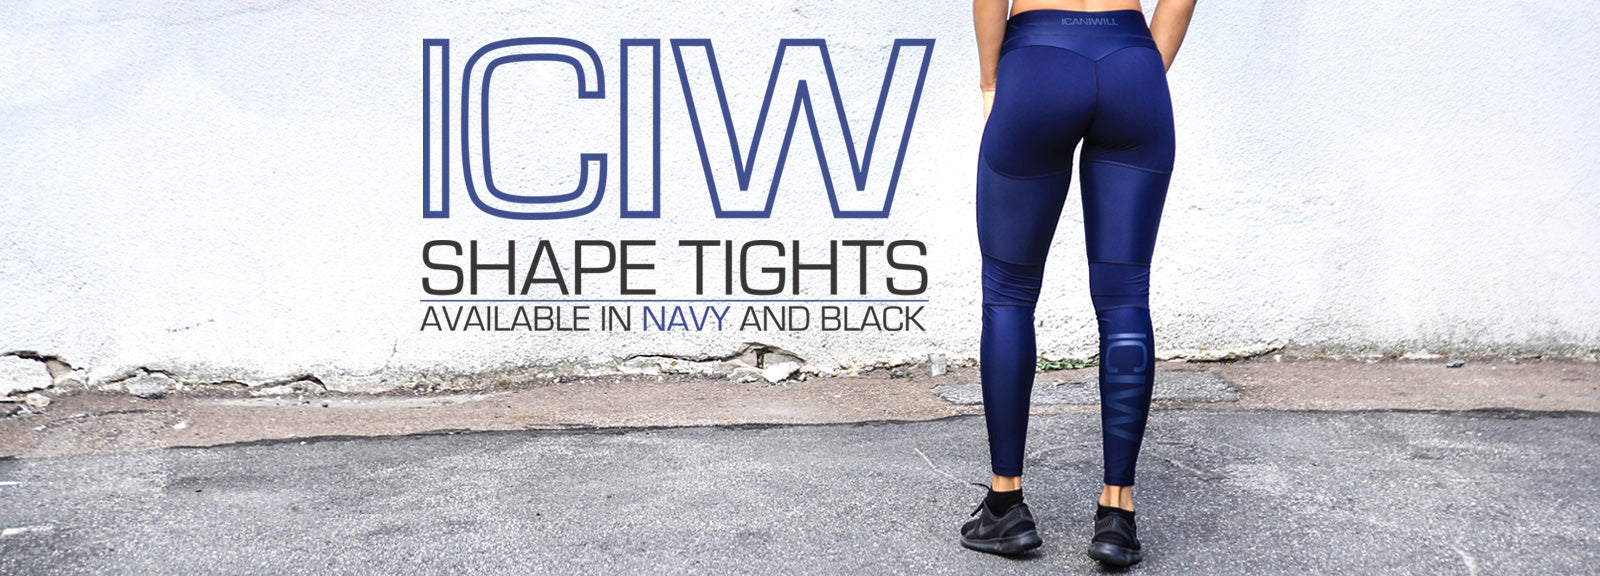 ICIW Shape Tights - Navy and Black